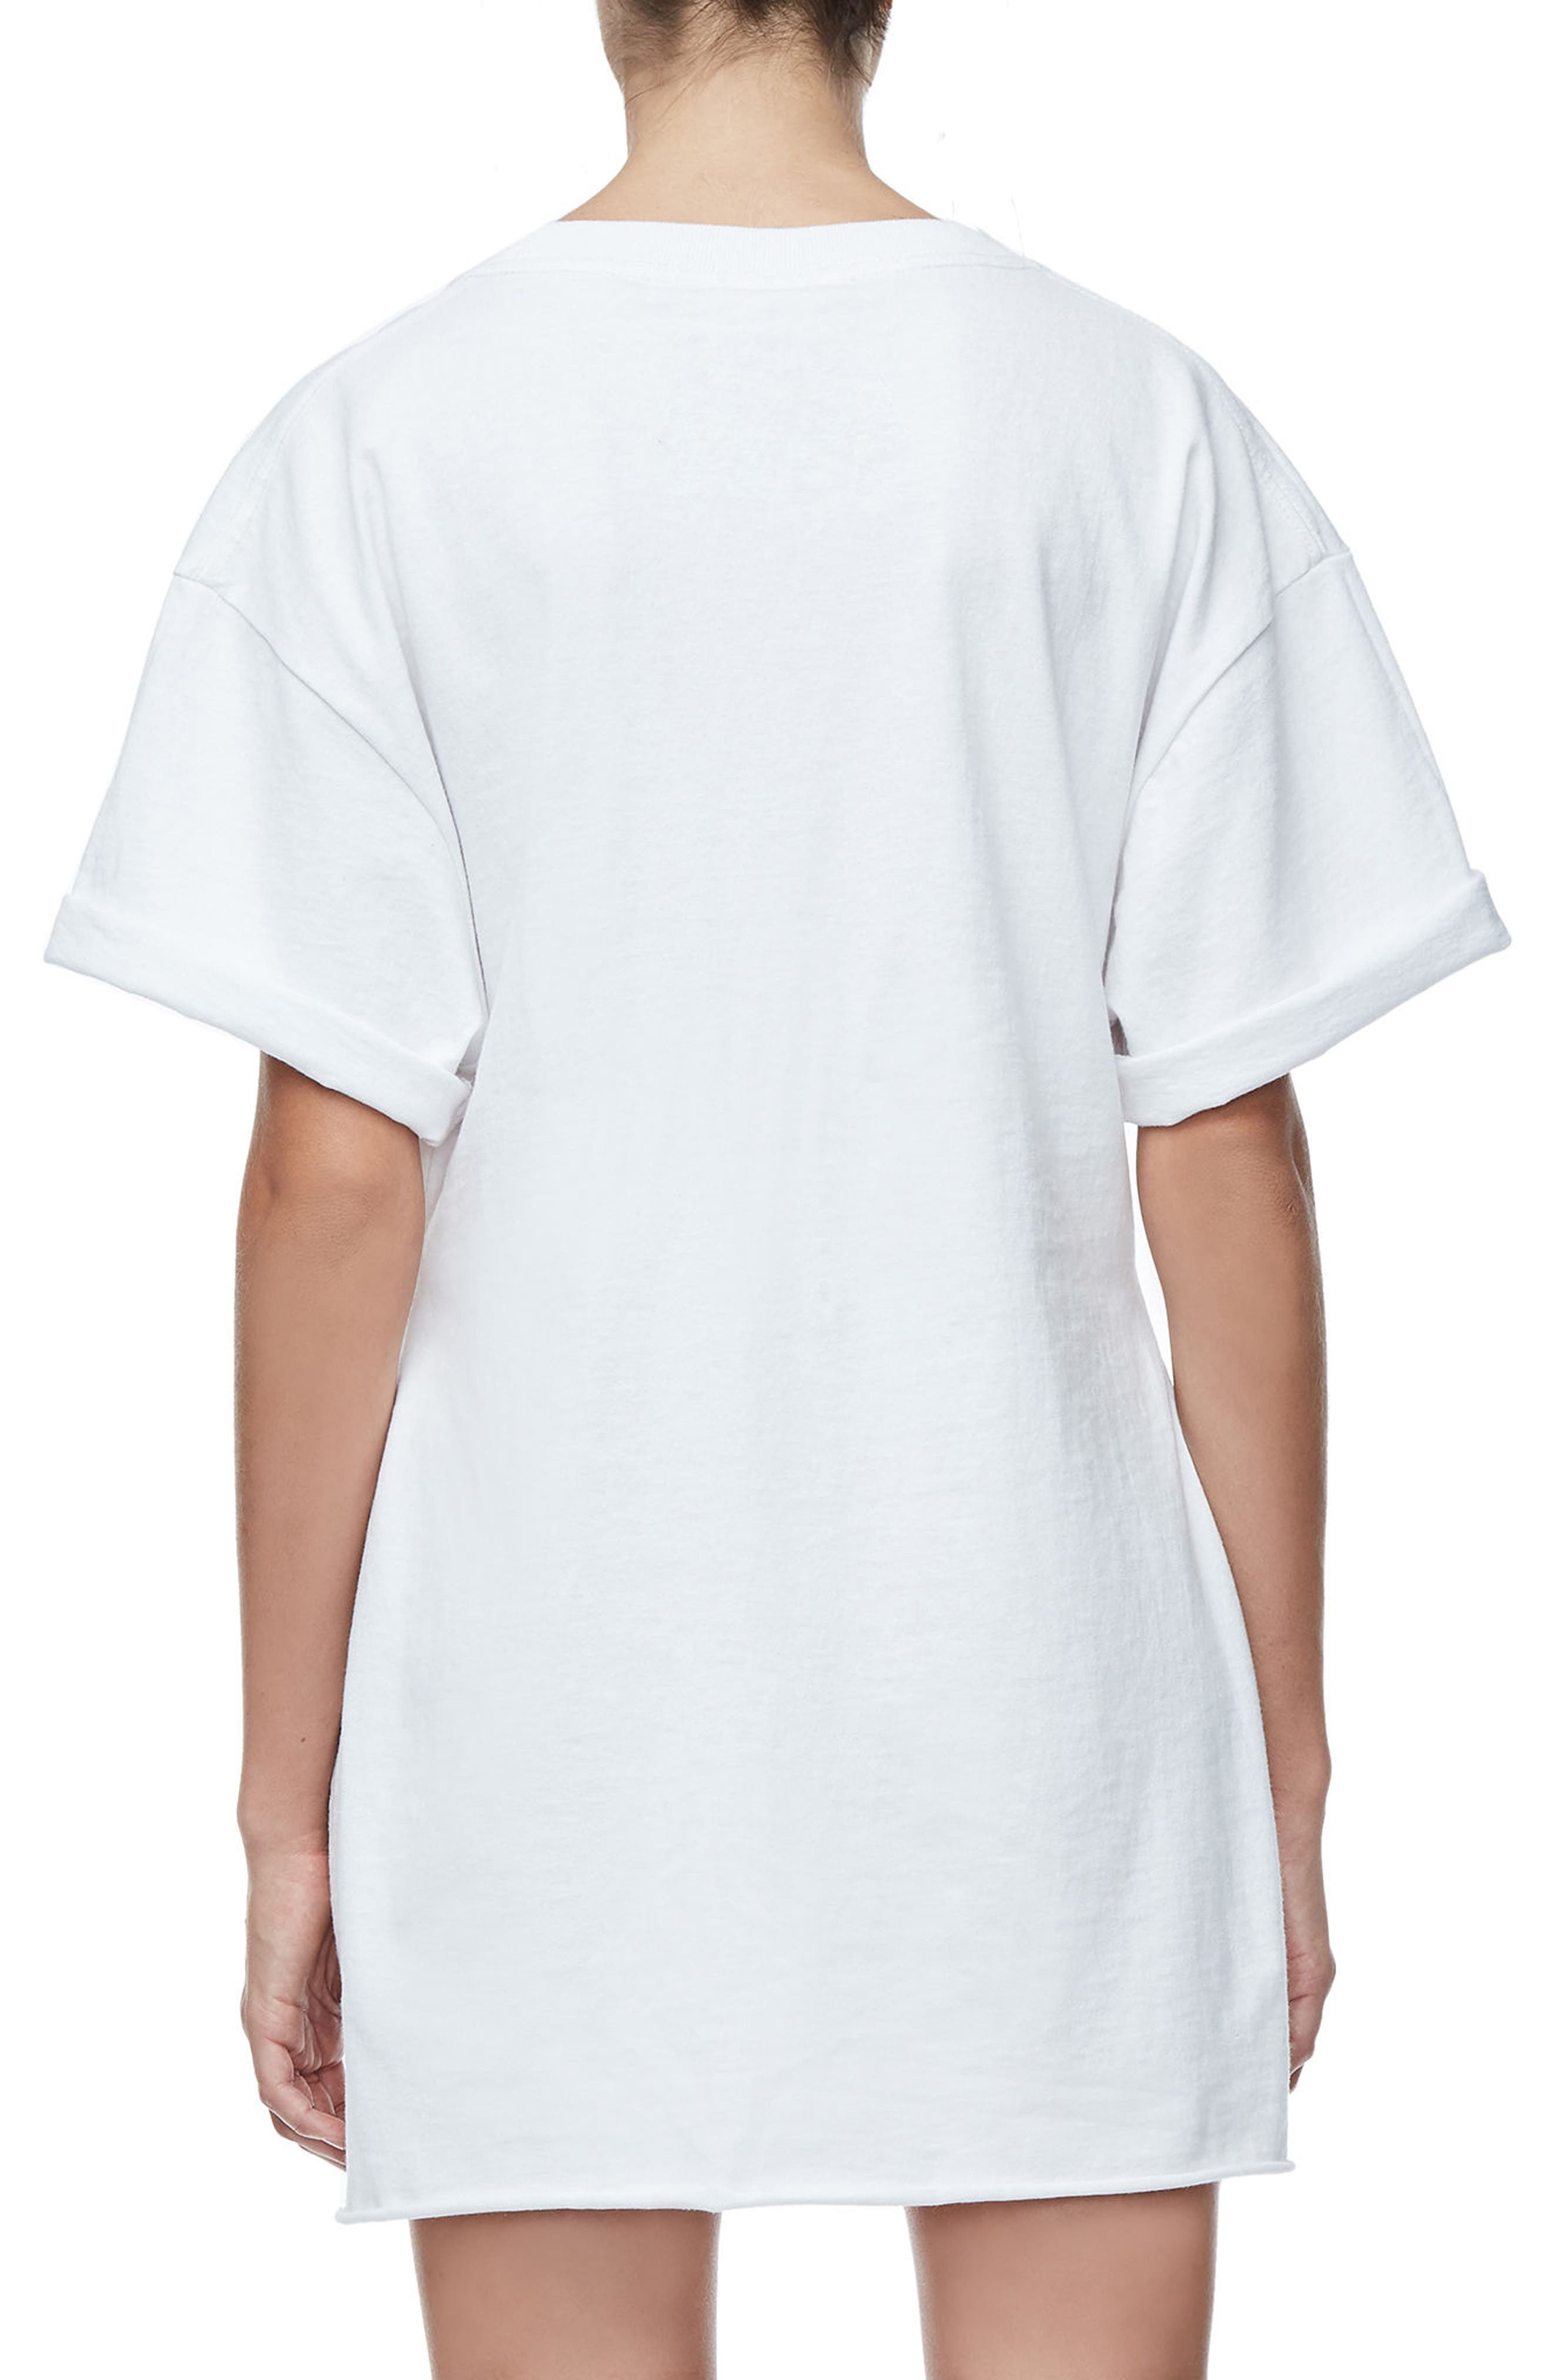 Goodies Graphic Oversize Tee,                             Alternate thumbnail 3, color,                             White001